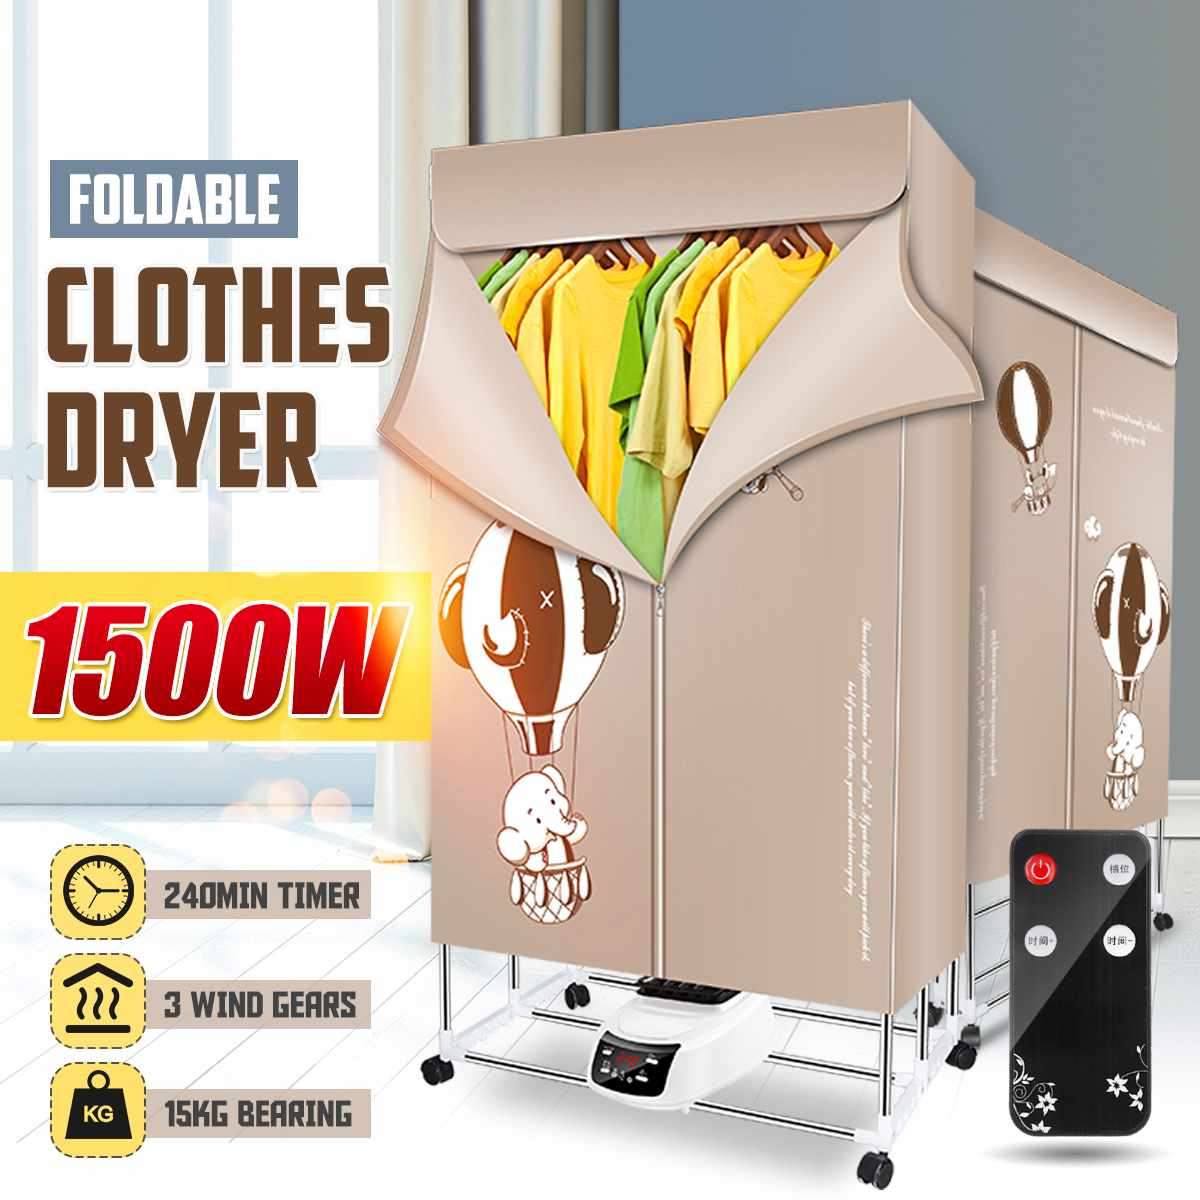 1500W 110-240V Electric Cloth Dryer Household Portable Baby Cloth Shoes Boots Dryer Power Motor Drying Warm And Laundry Garment